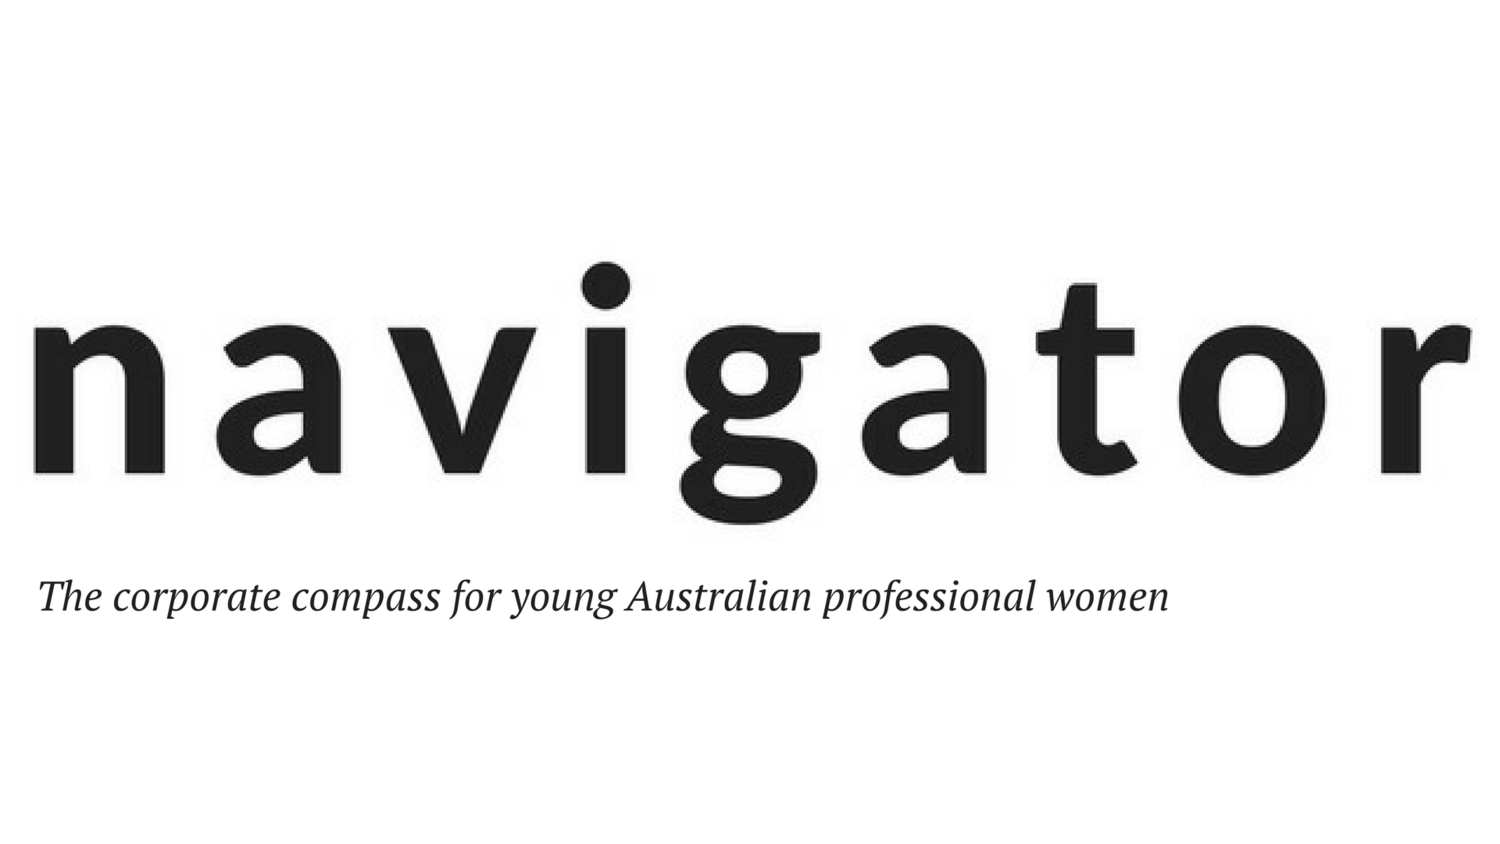 Navigator - The corporate compass for young Australian professional women